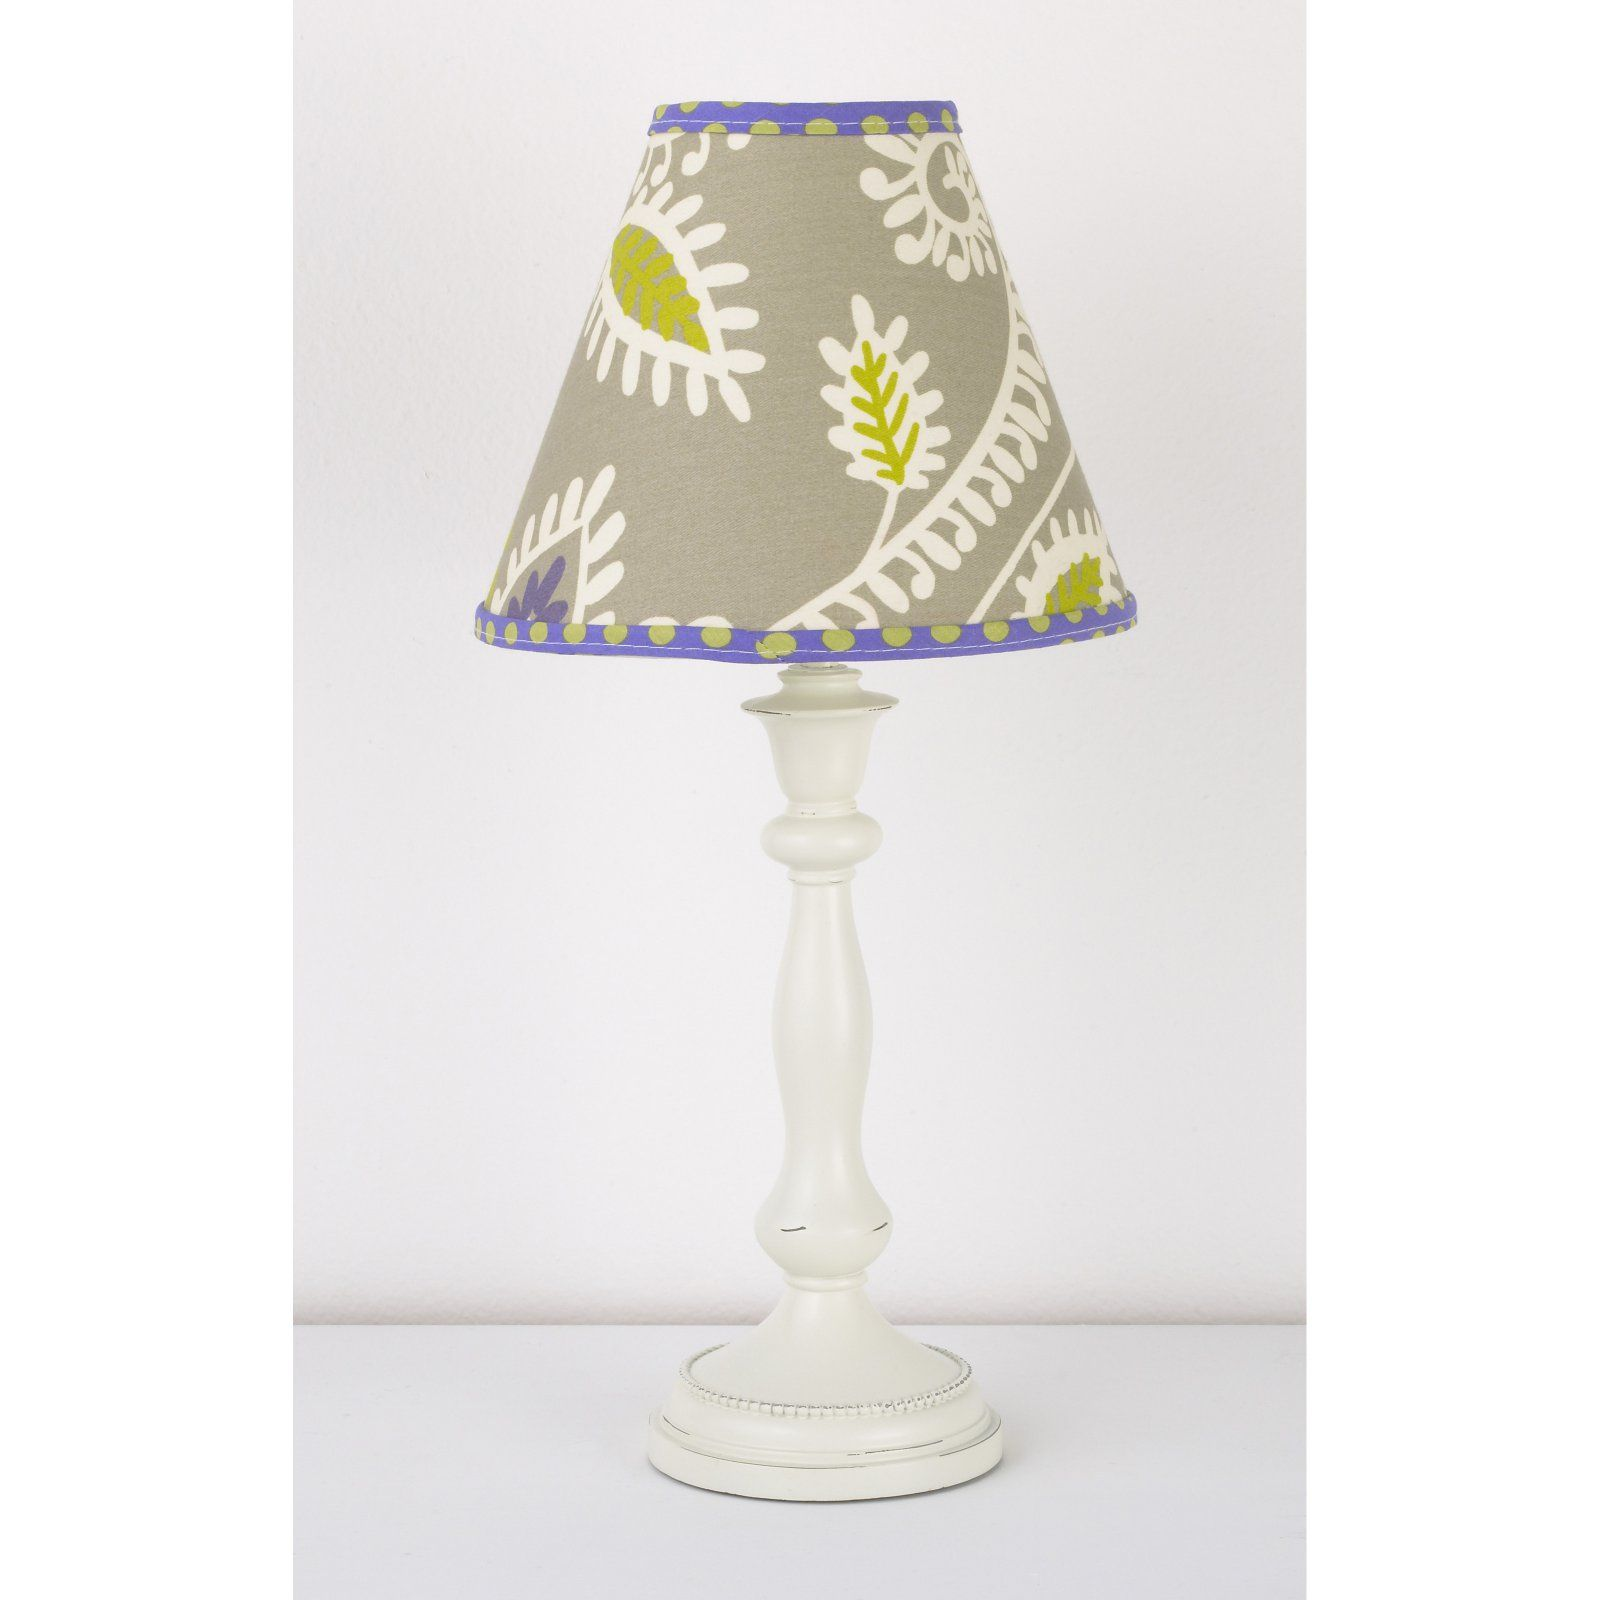 Tale Designs Standard Periwinkle Cotton Lamp 2019Products In zUMSqpV